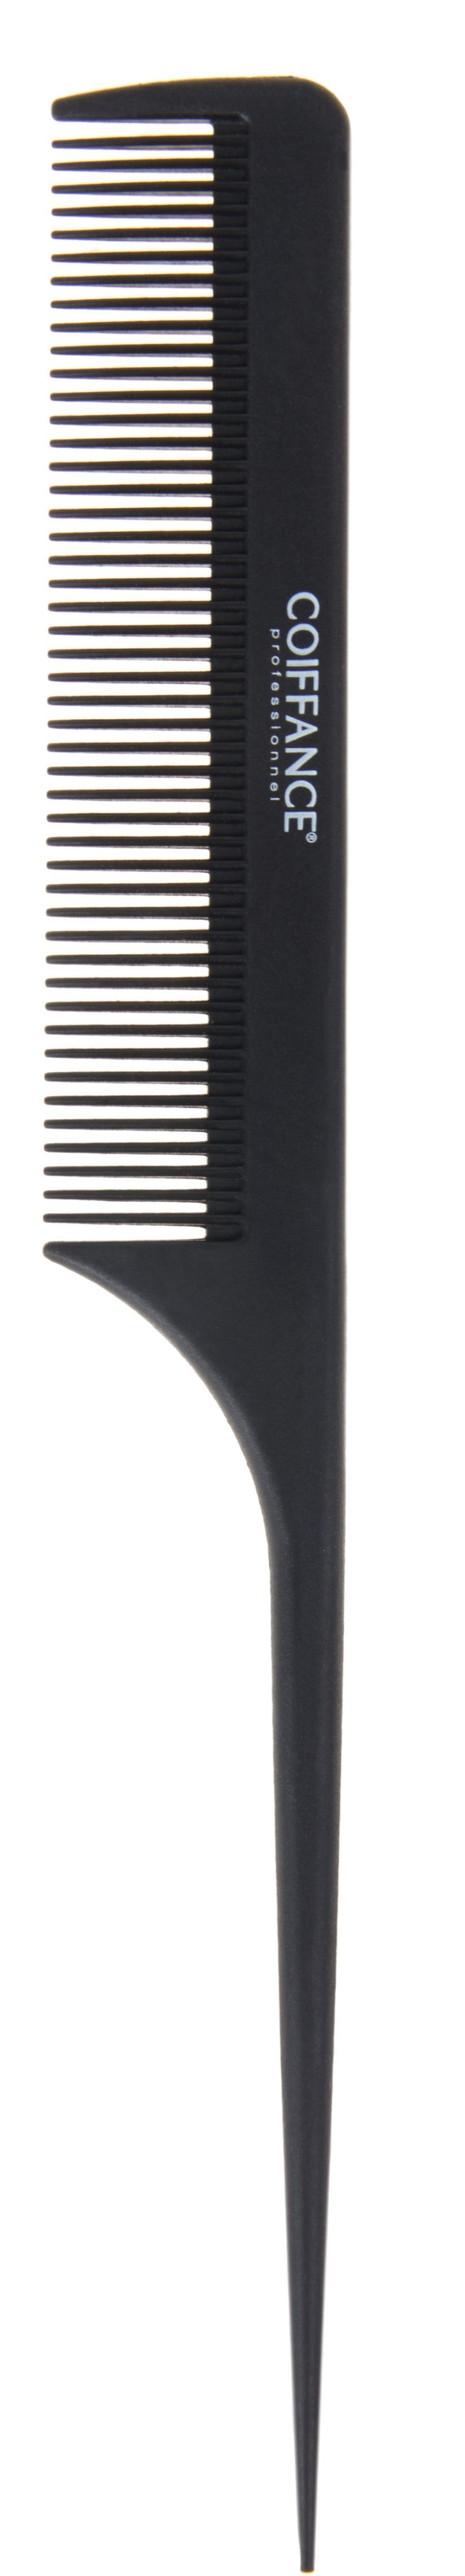 coiffance - tail comb